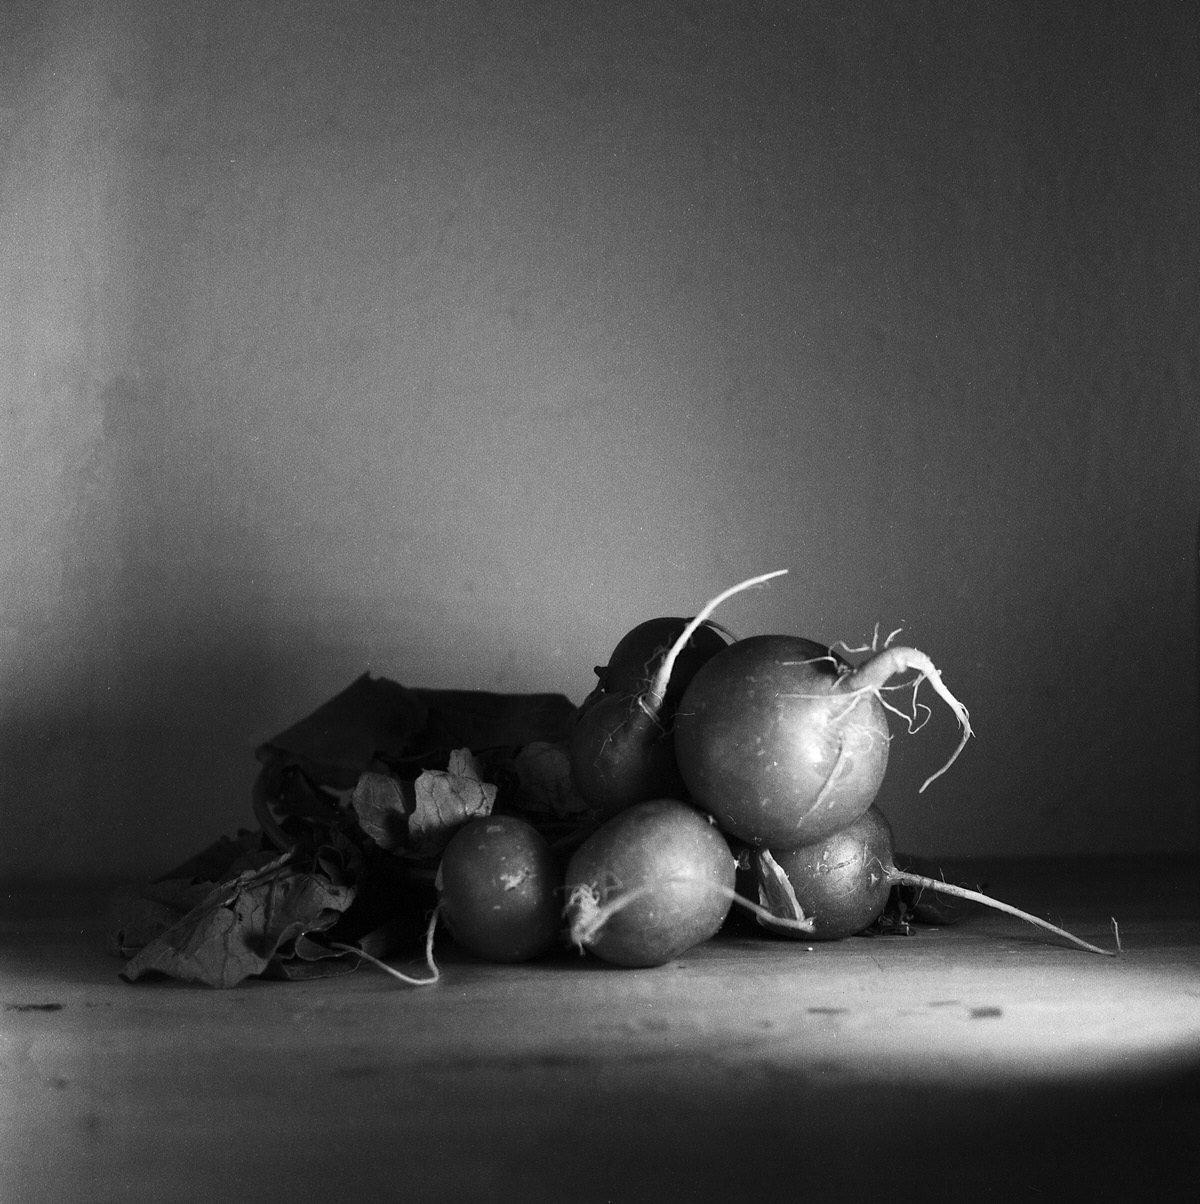 Radish - Still Life Photography | Yashica MAT124 with Fomapan